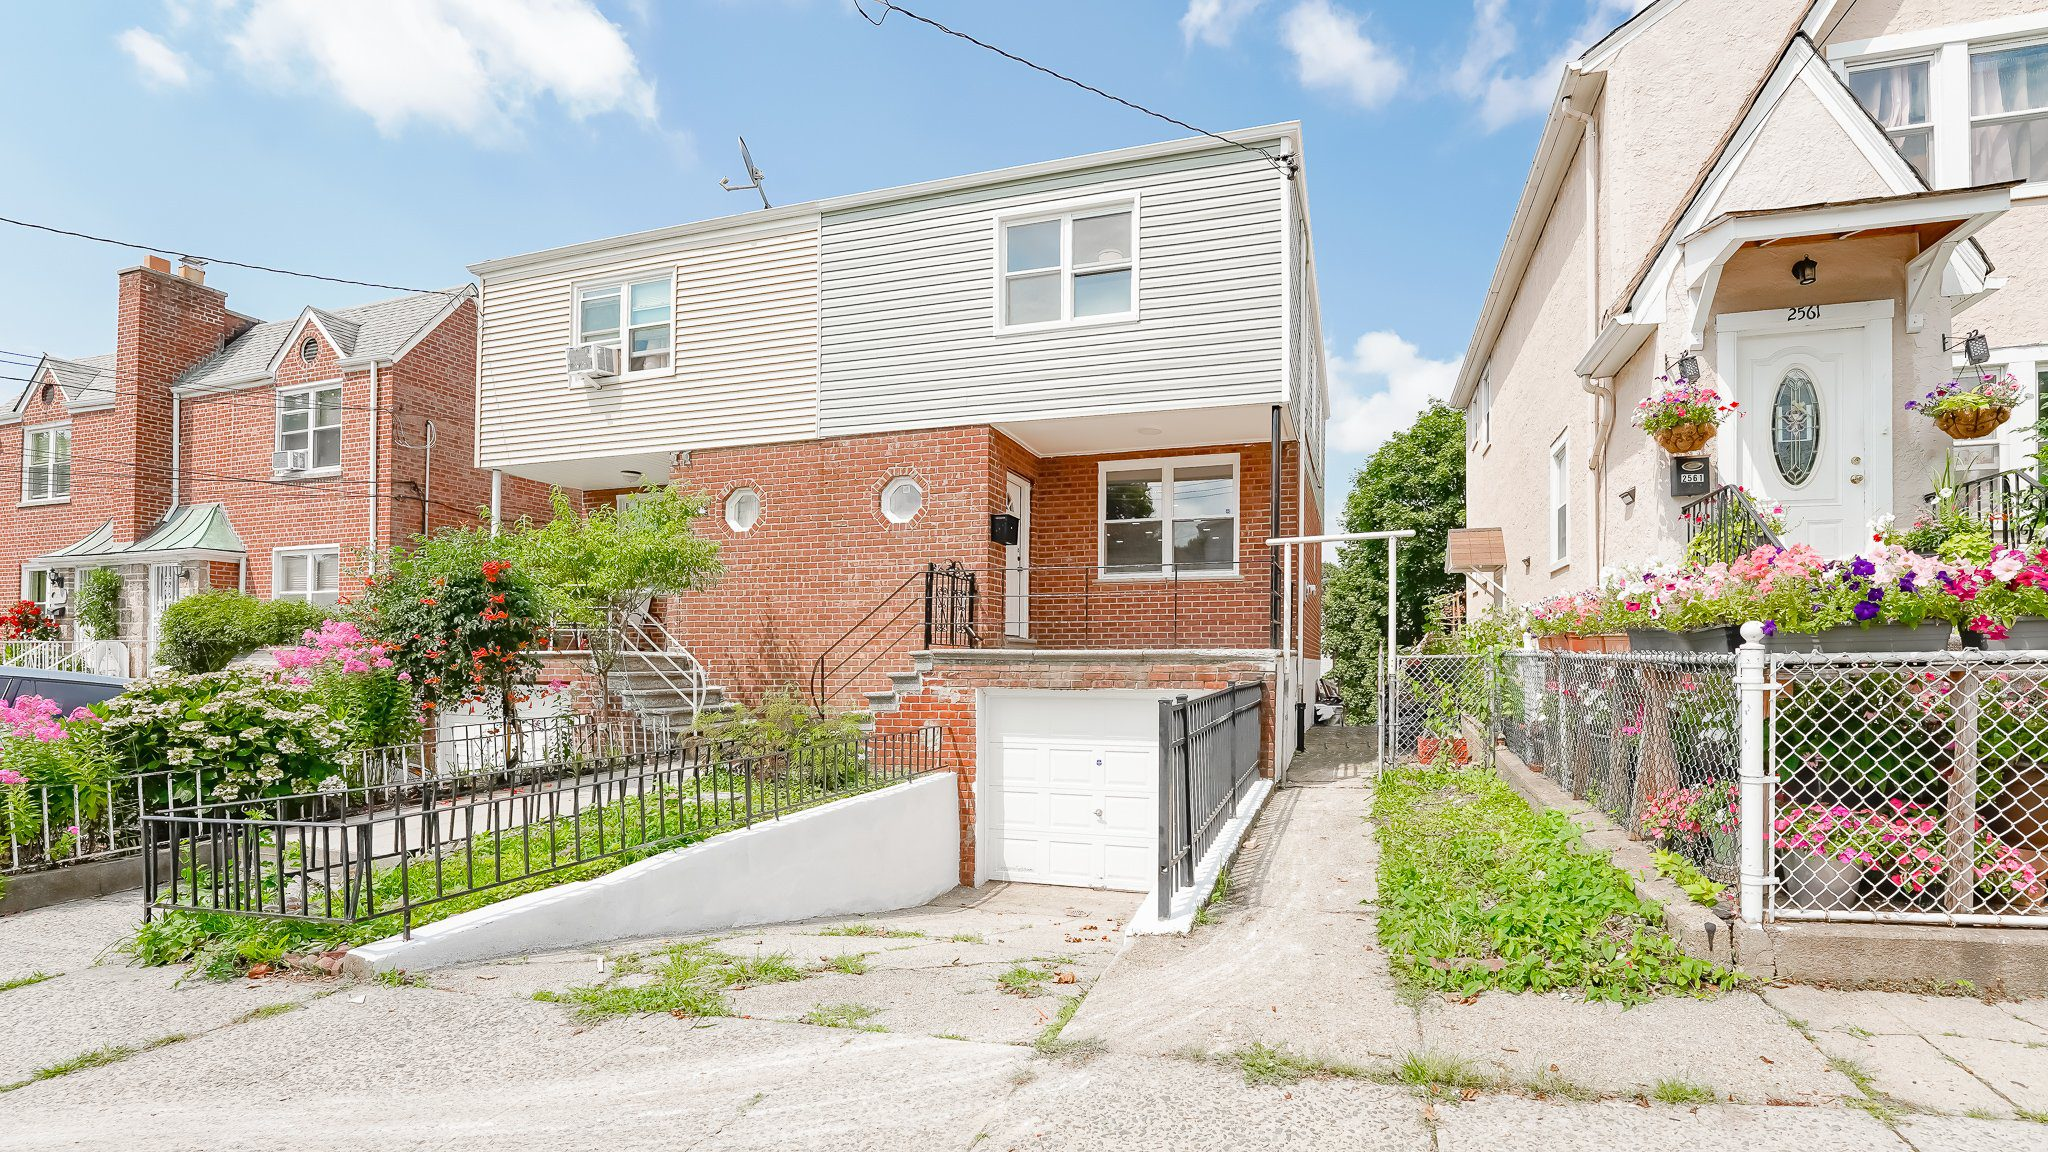 One Family for sale in Pelham Gardens, Bronx NY 10469. THIS gorgeous one Family has everything on your List and FAR BEYOND!